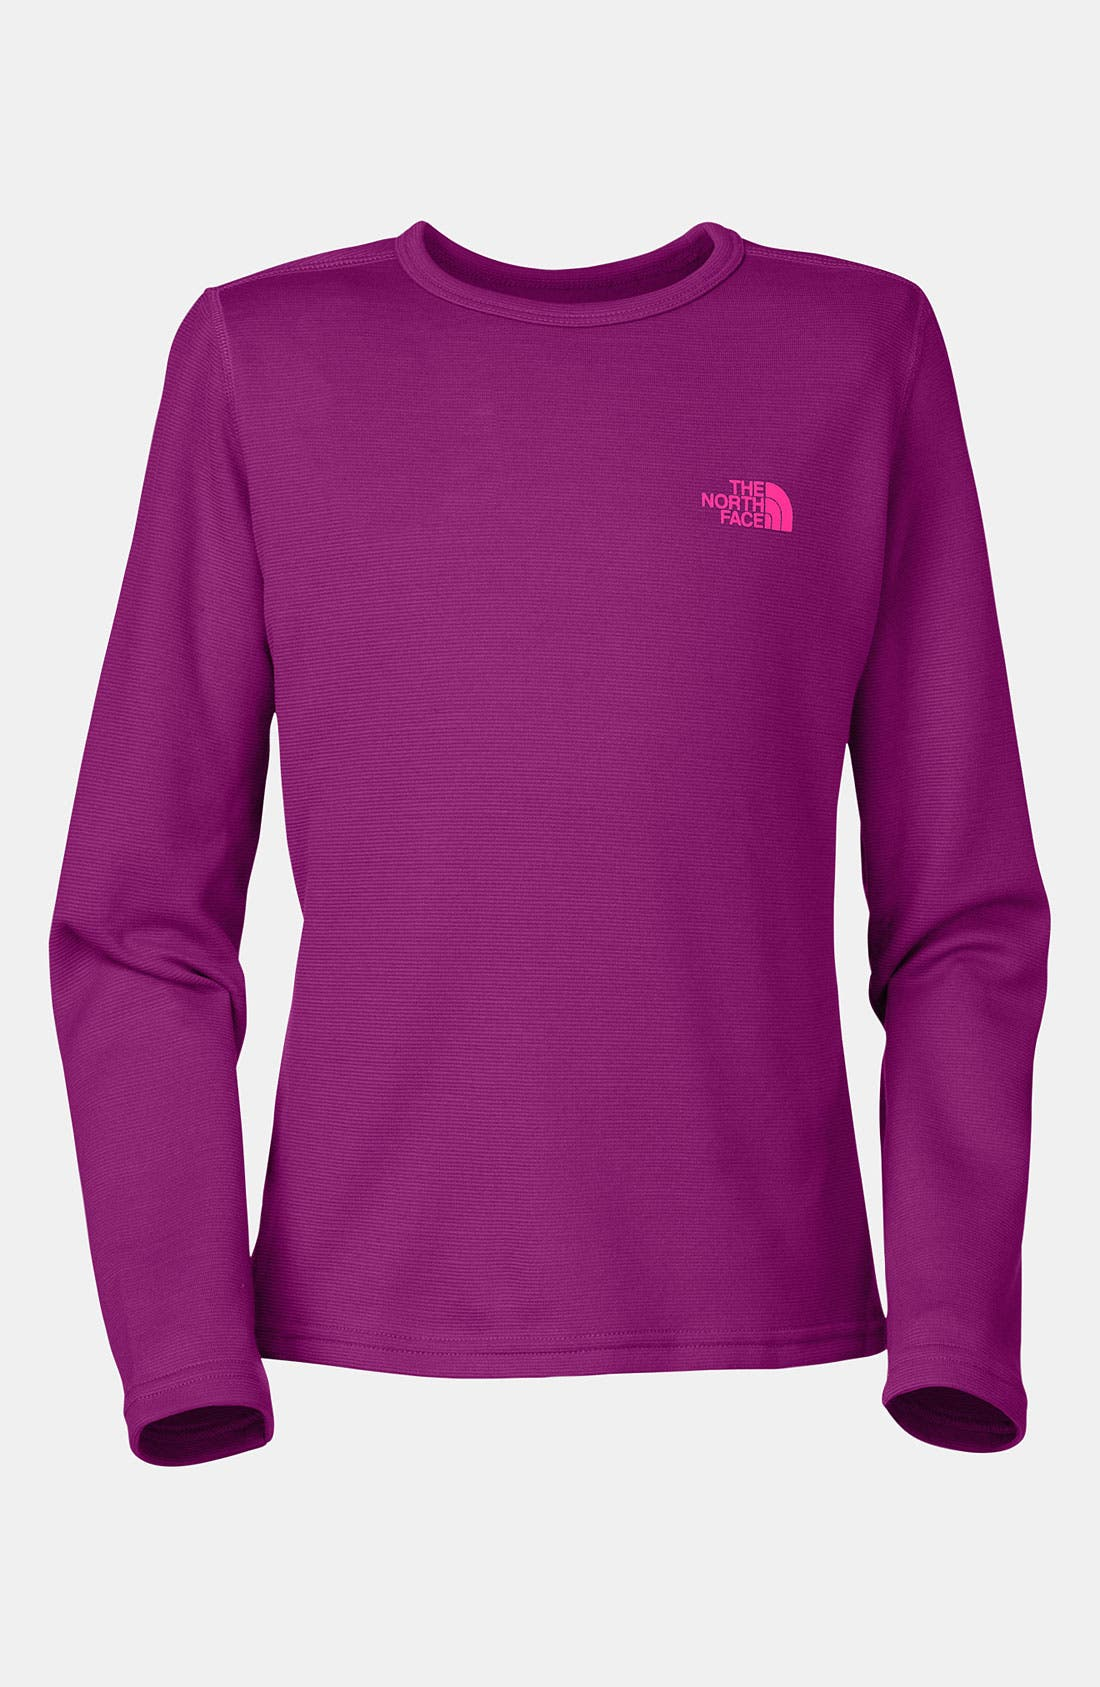 Main Image - The North Face Base Layer Tee (Little Girls & Big Girls)